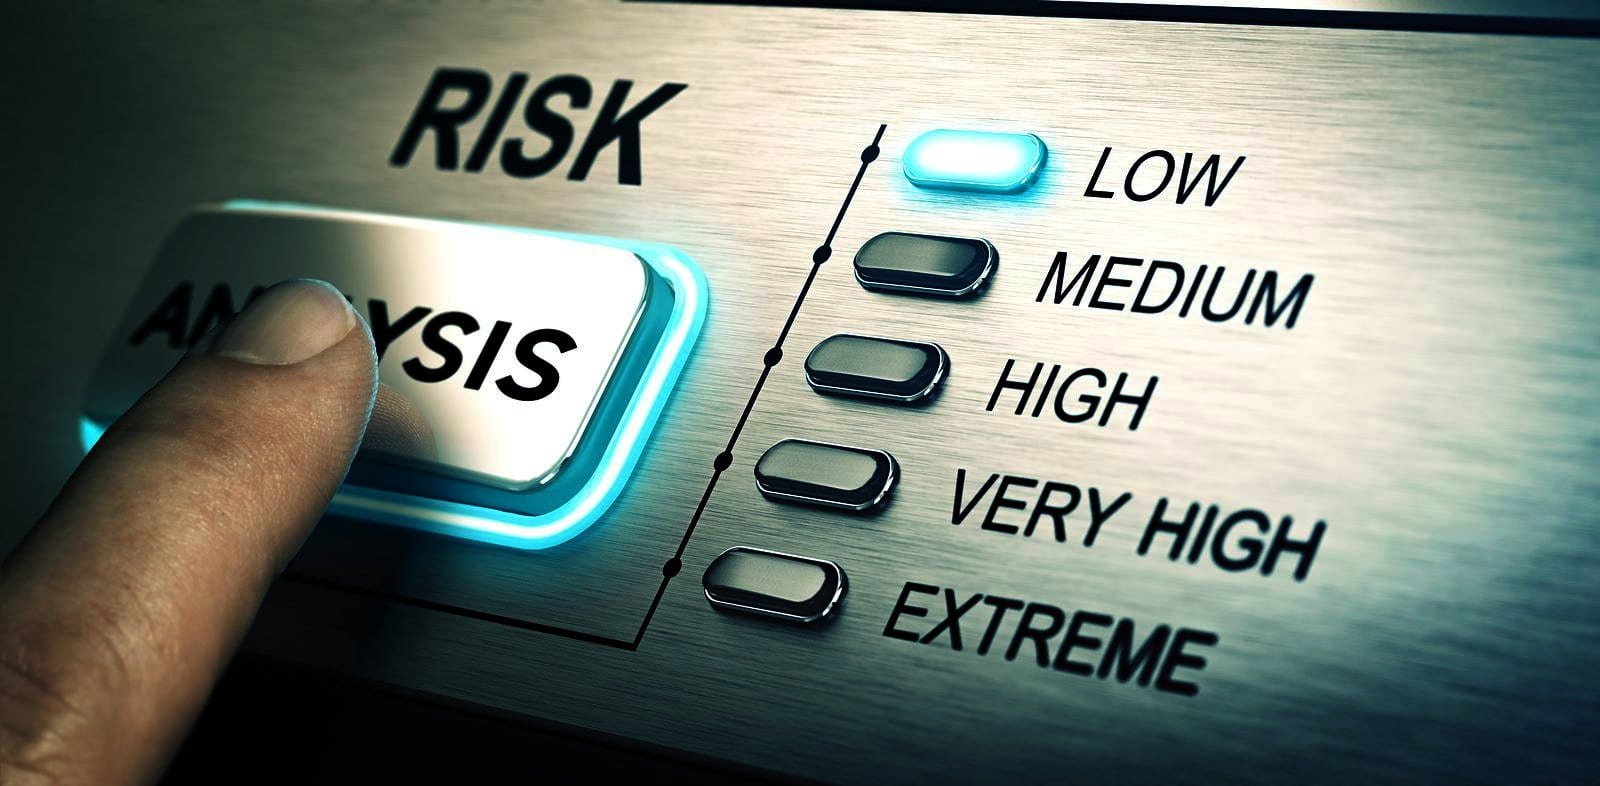 Investment Ysis | Are Low Risk Investments Possible In Real Estate Investing Why Or